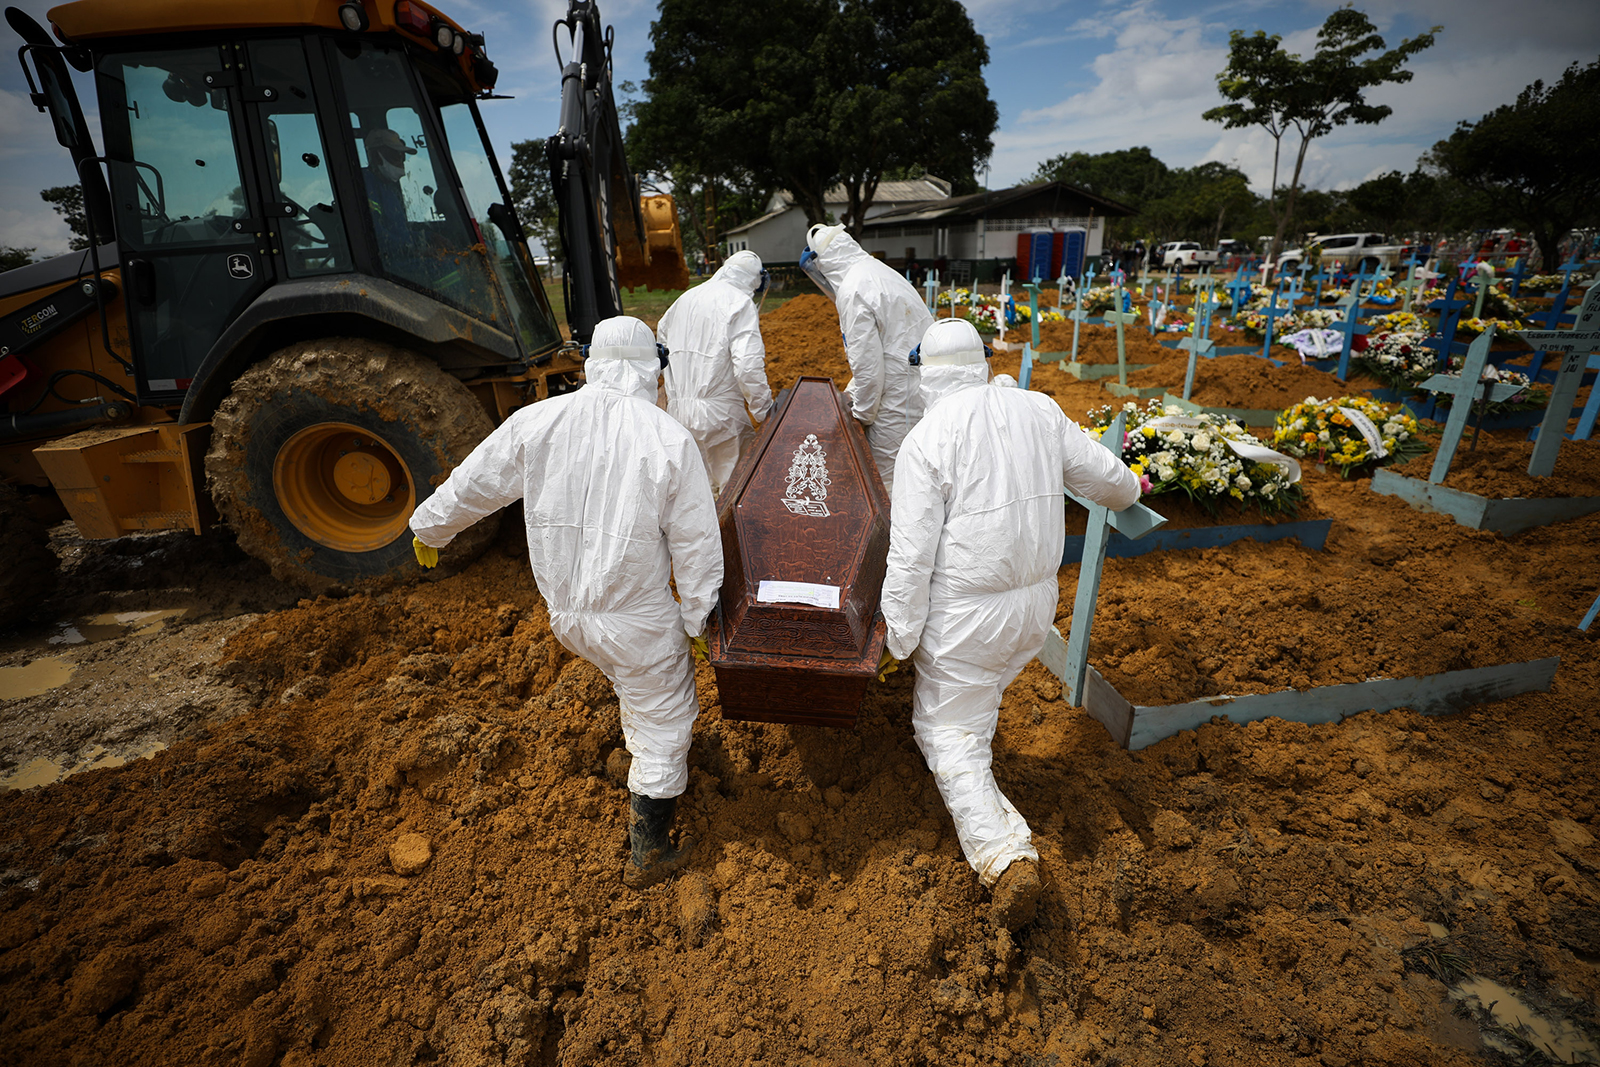 Cemetery workers carry the coffin of a Covid-19 victim at Nossa Senhora Aparecida Cemetery in Manaus, Brazil, on January 15.